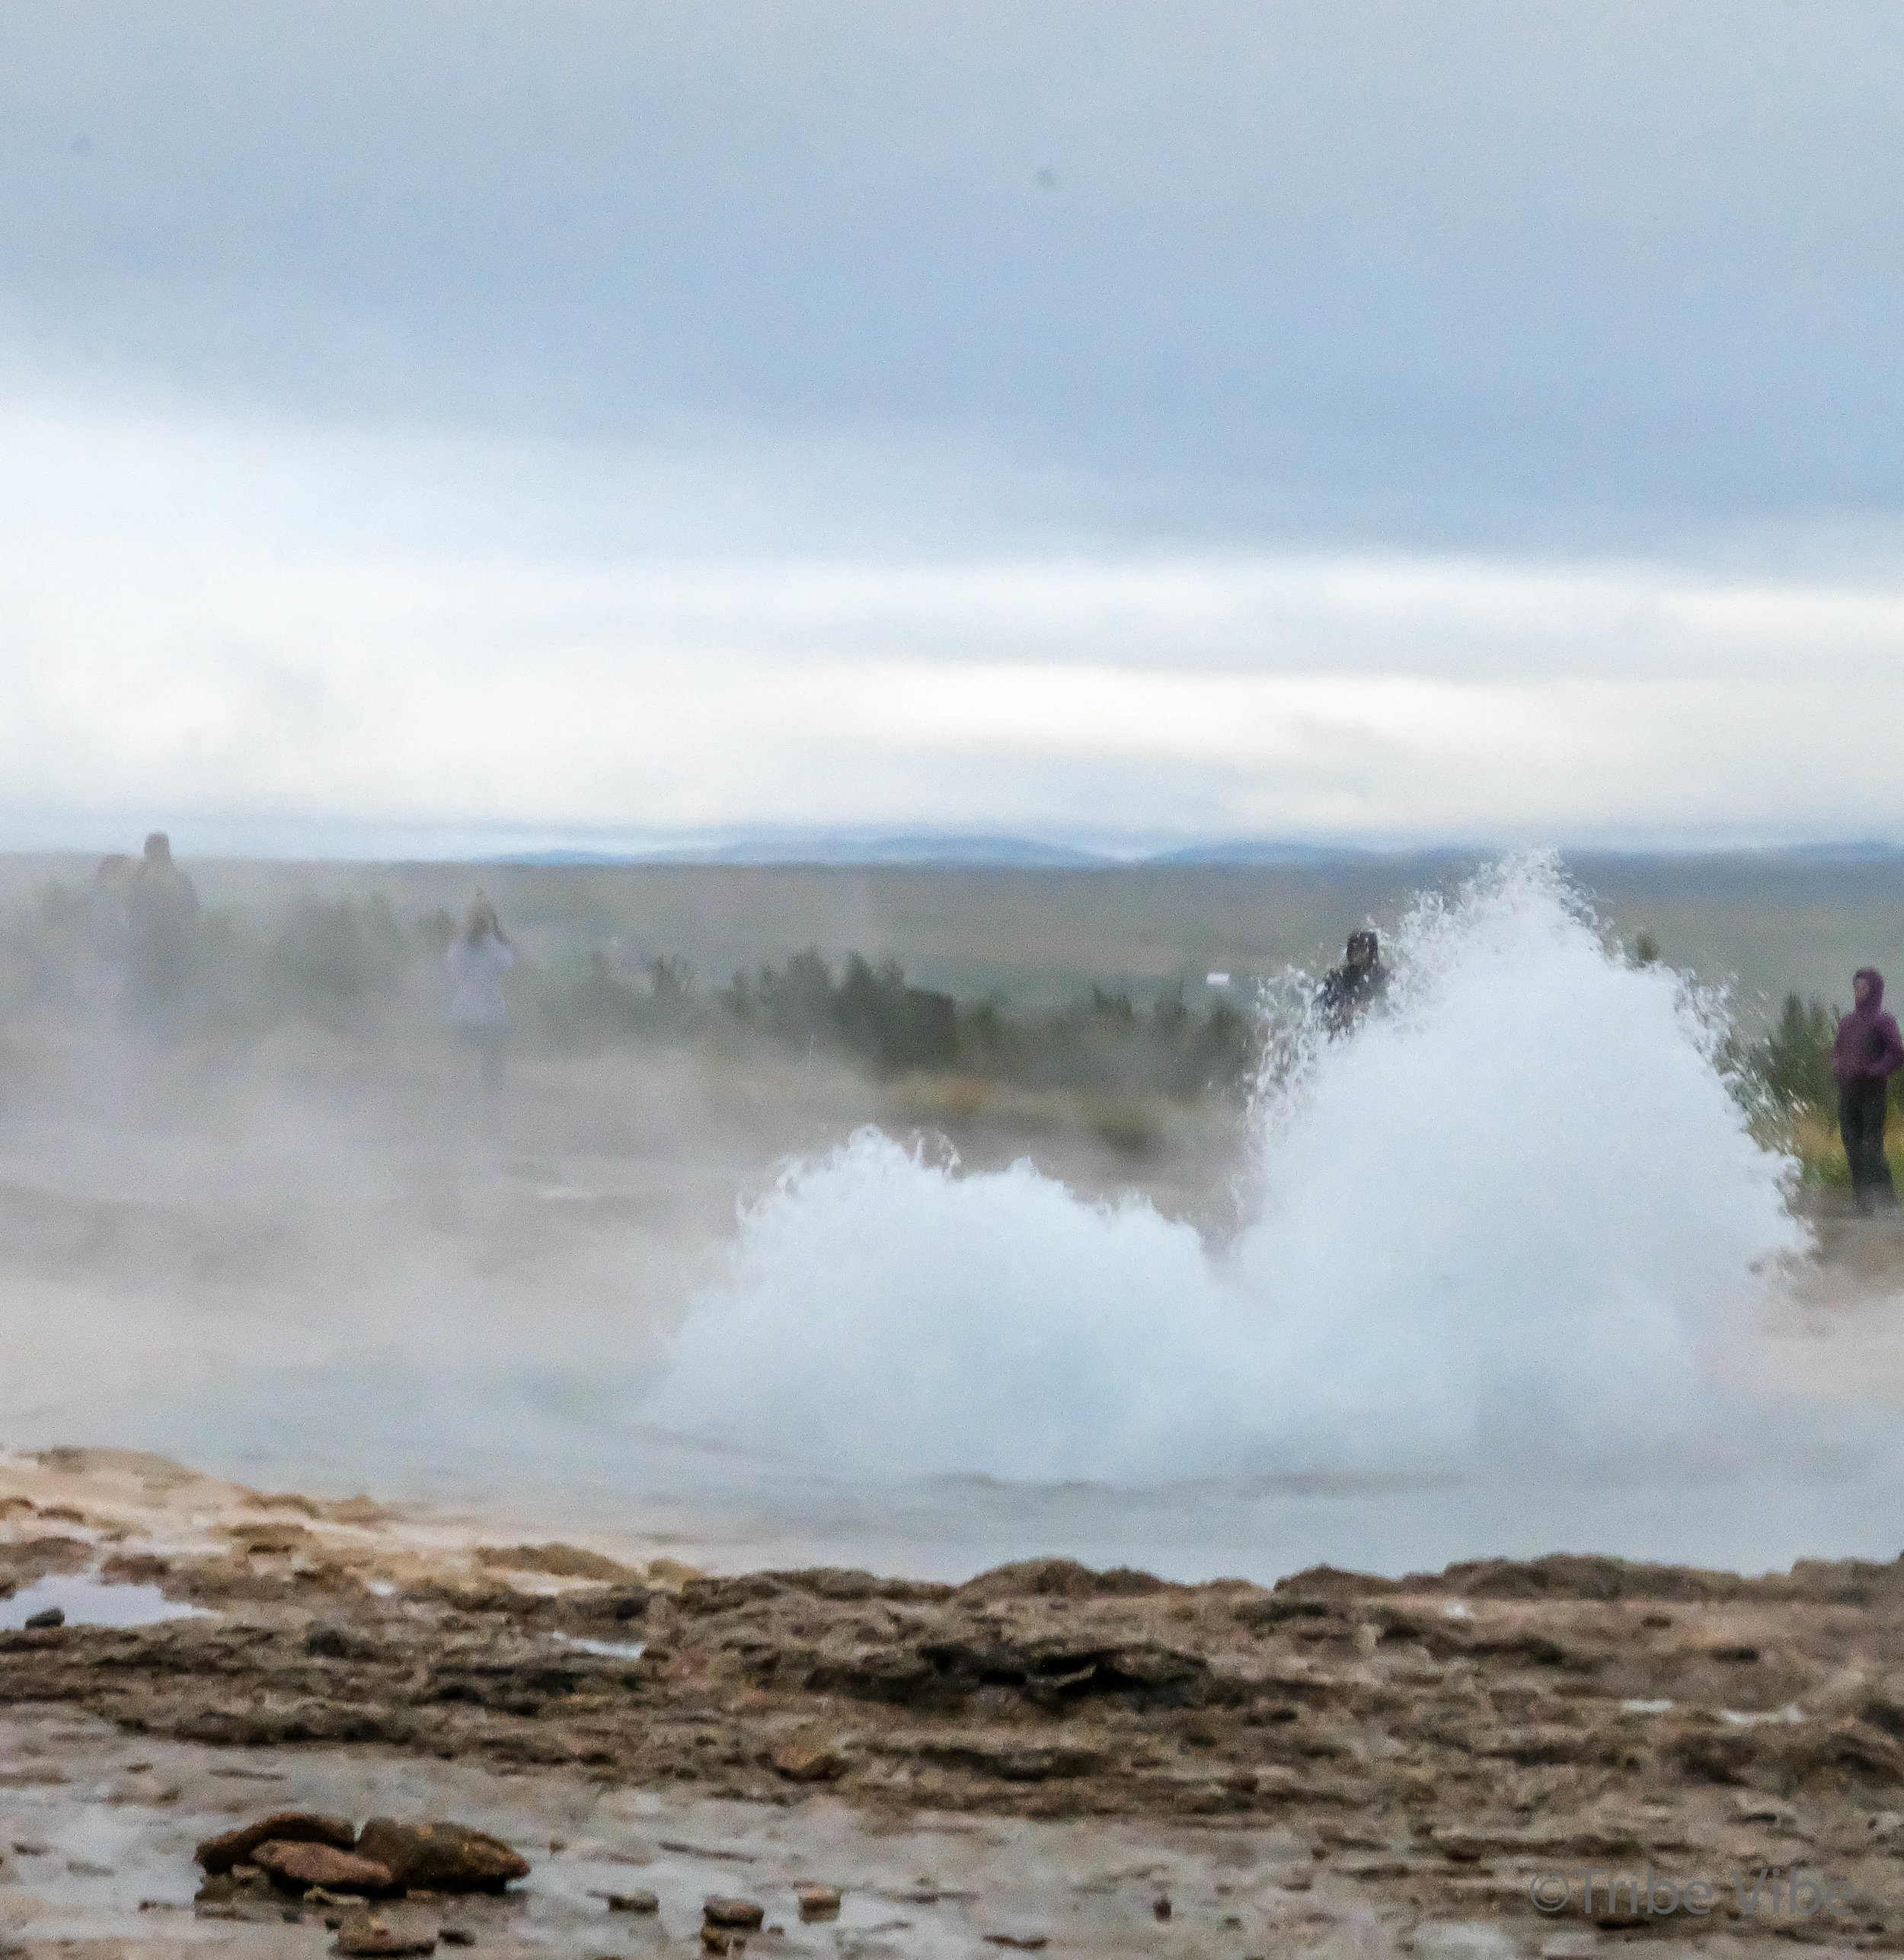 Trying unsuccessfully to capture a good shot of Strokkur erupting